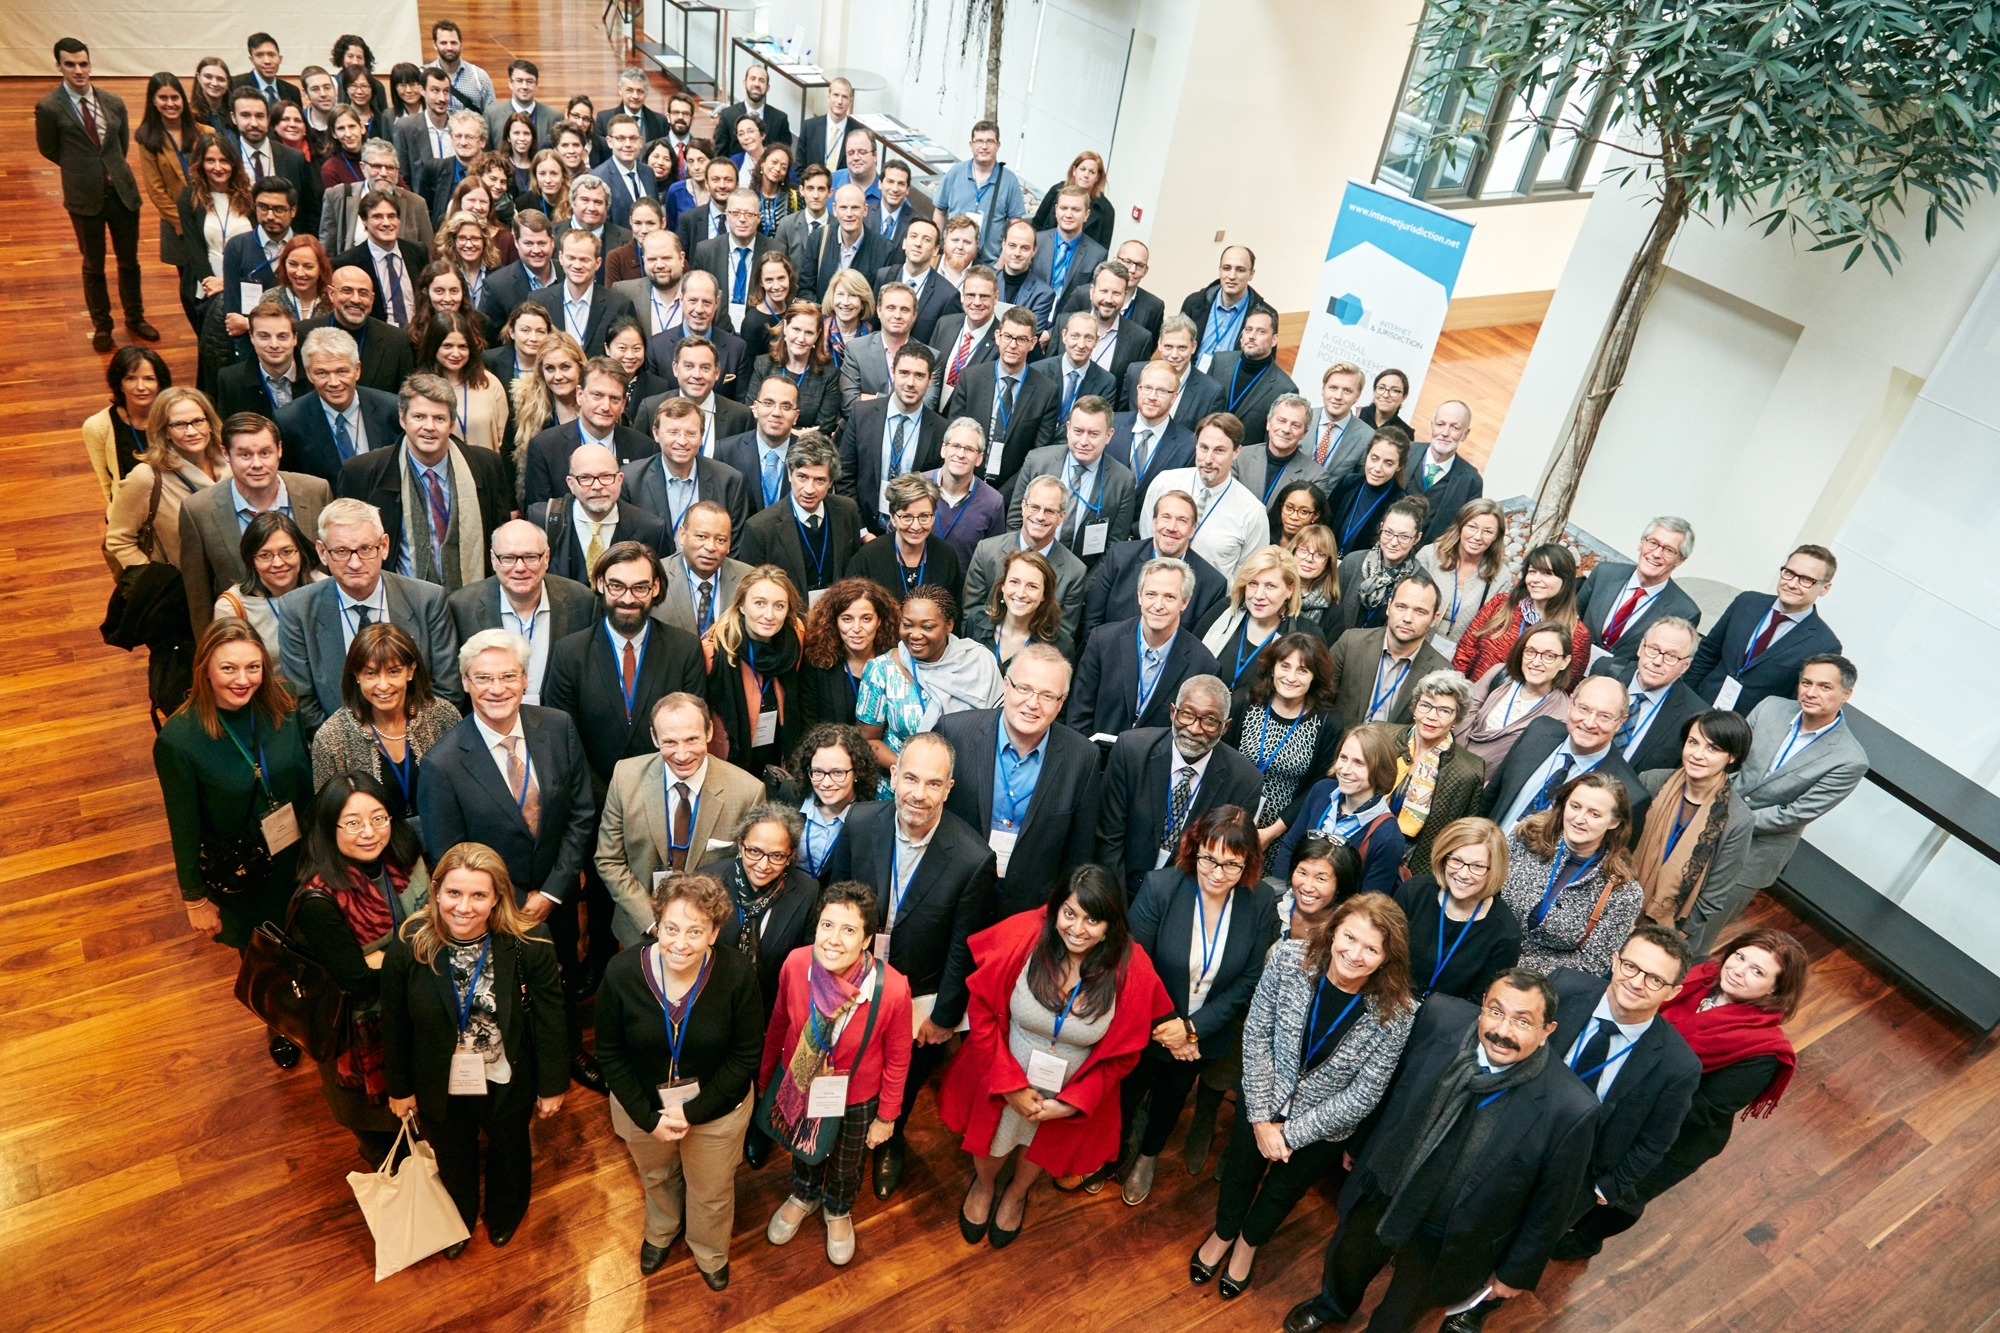 Internet Jurisdiction Multistakeholder Policy Network 2016 Group Photo